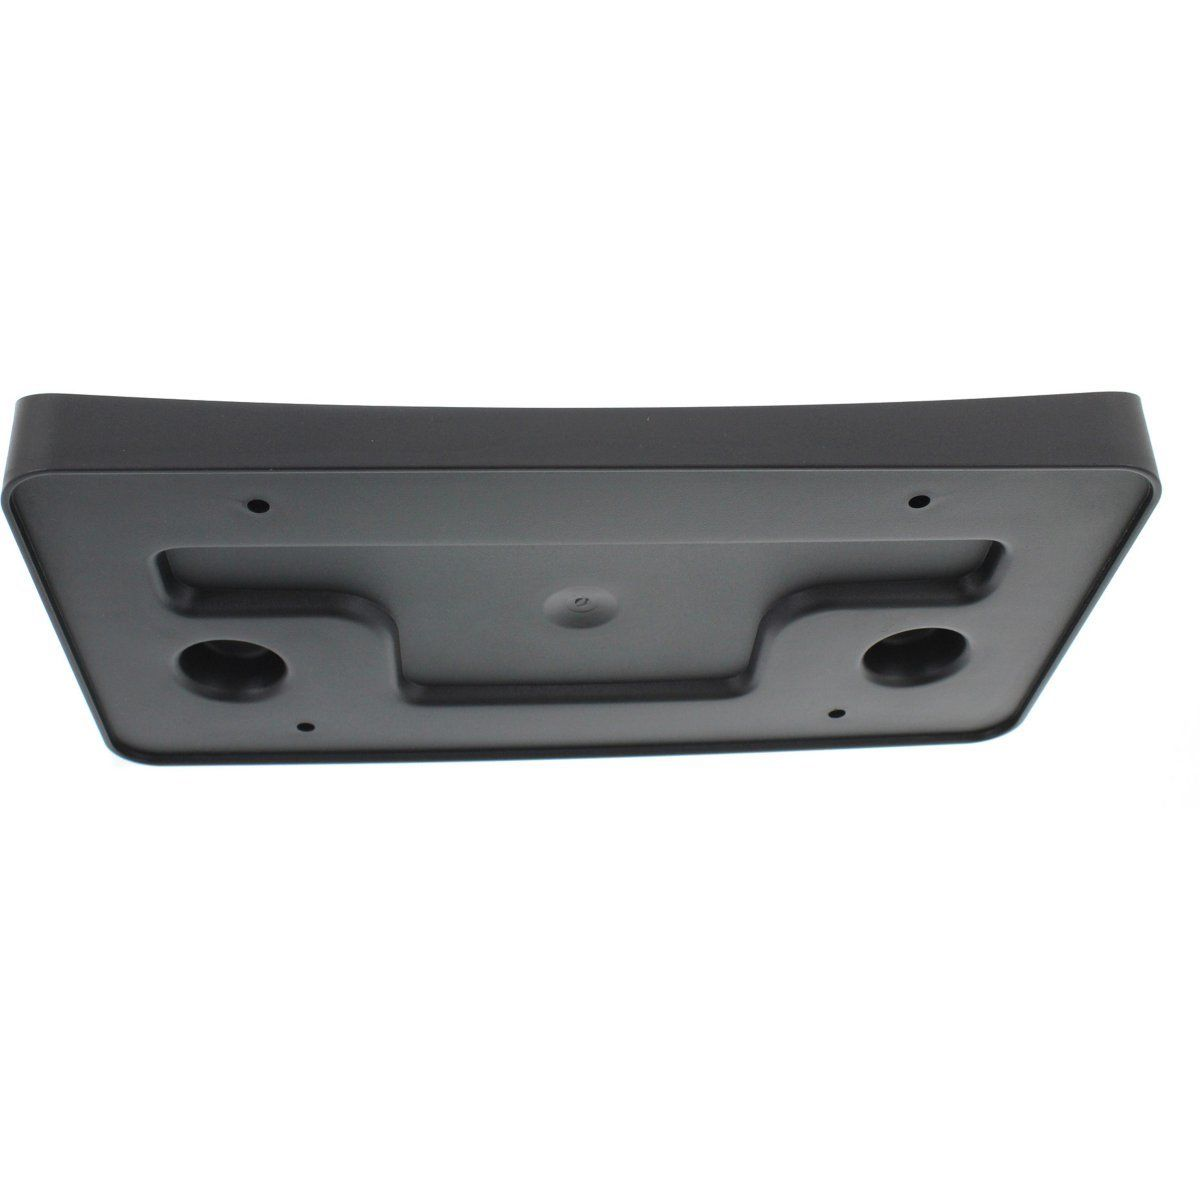 NEW FRONT LICENSE PLATE BRACKET FOR 2013 2014 FORD MUSTANG FO1068148